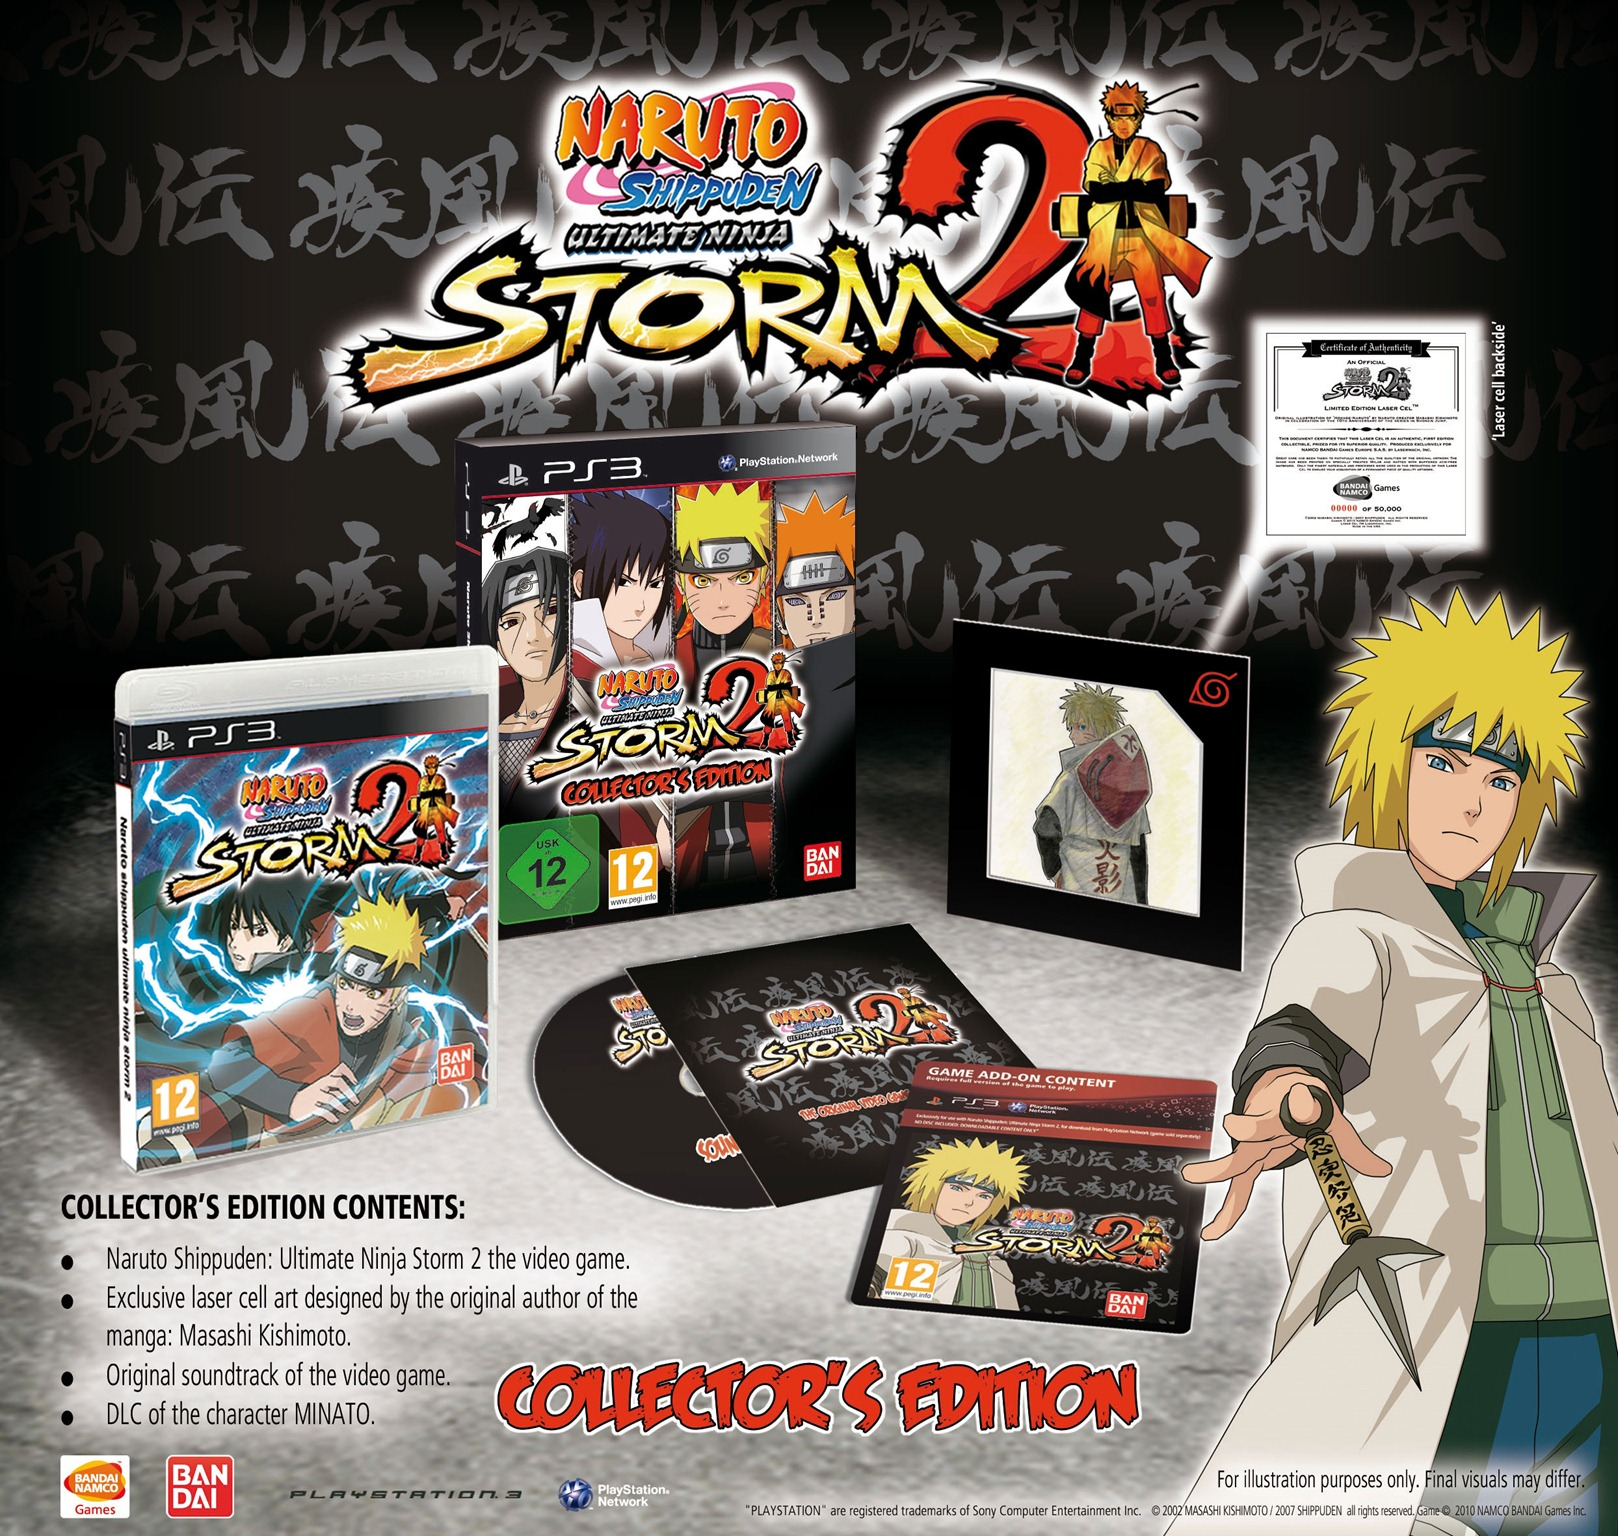 Ktcl Announces 10th Anniversary Of Keggs Eggs: Naruto Shippuden: Ultimate Ninja Storm 2 Special